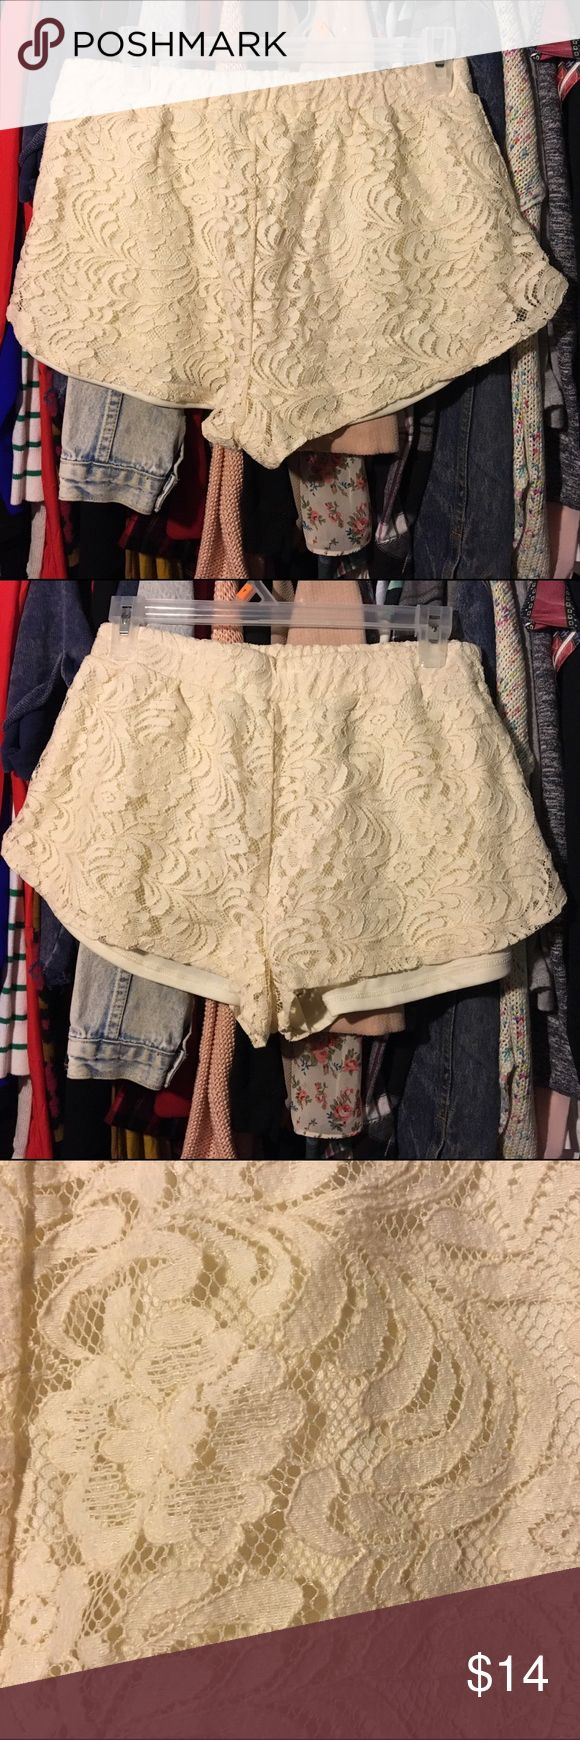 Lace cream shorts Lace cream shorts never worn, can look very cute with boots, high boots work too. Any color or style of shirt goes. Shorts